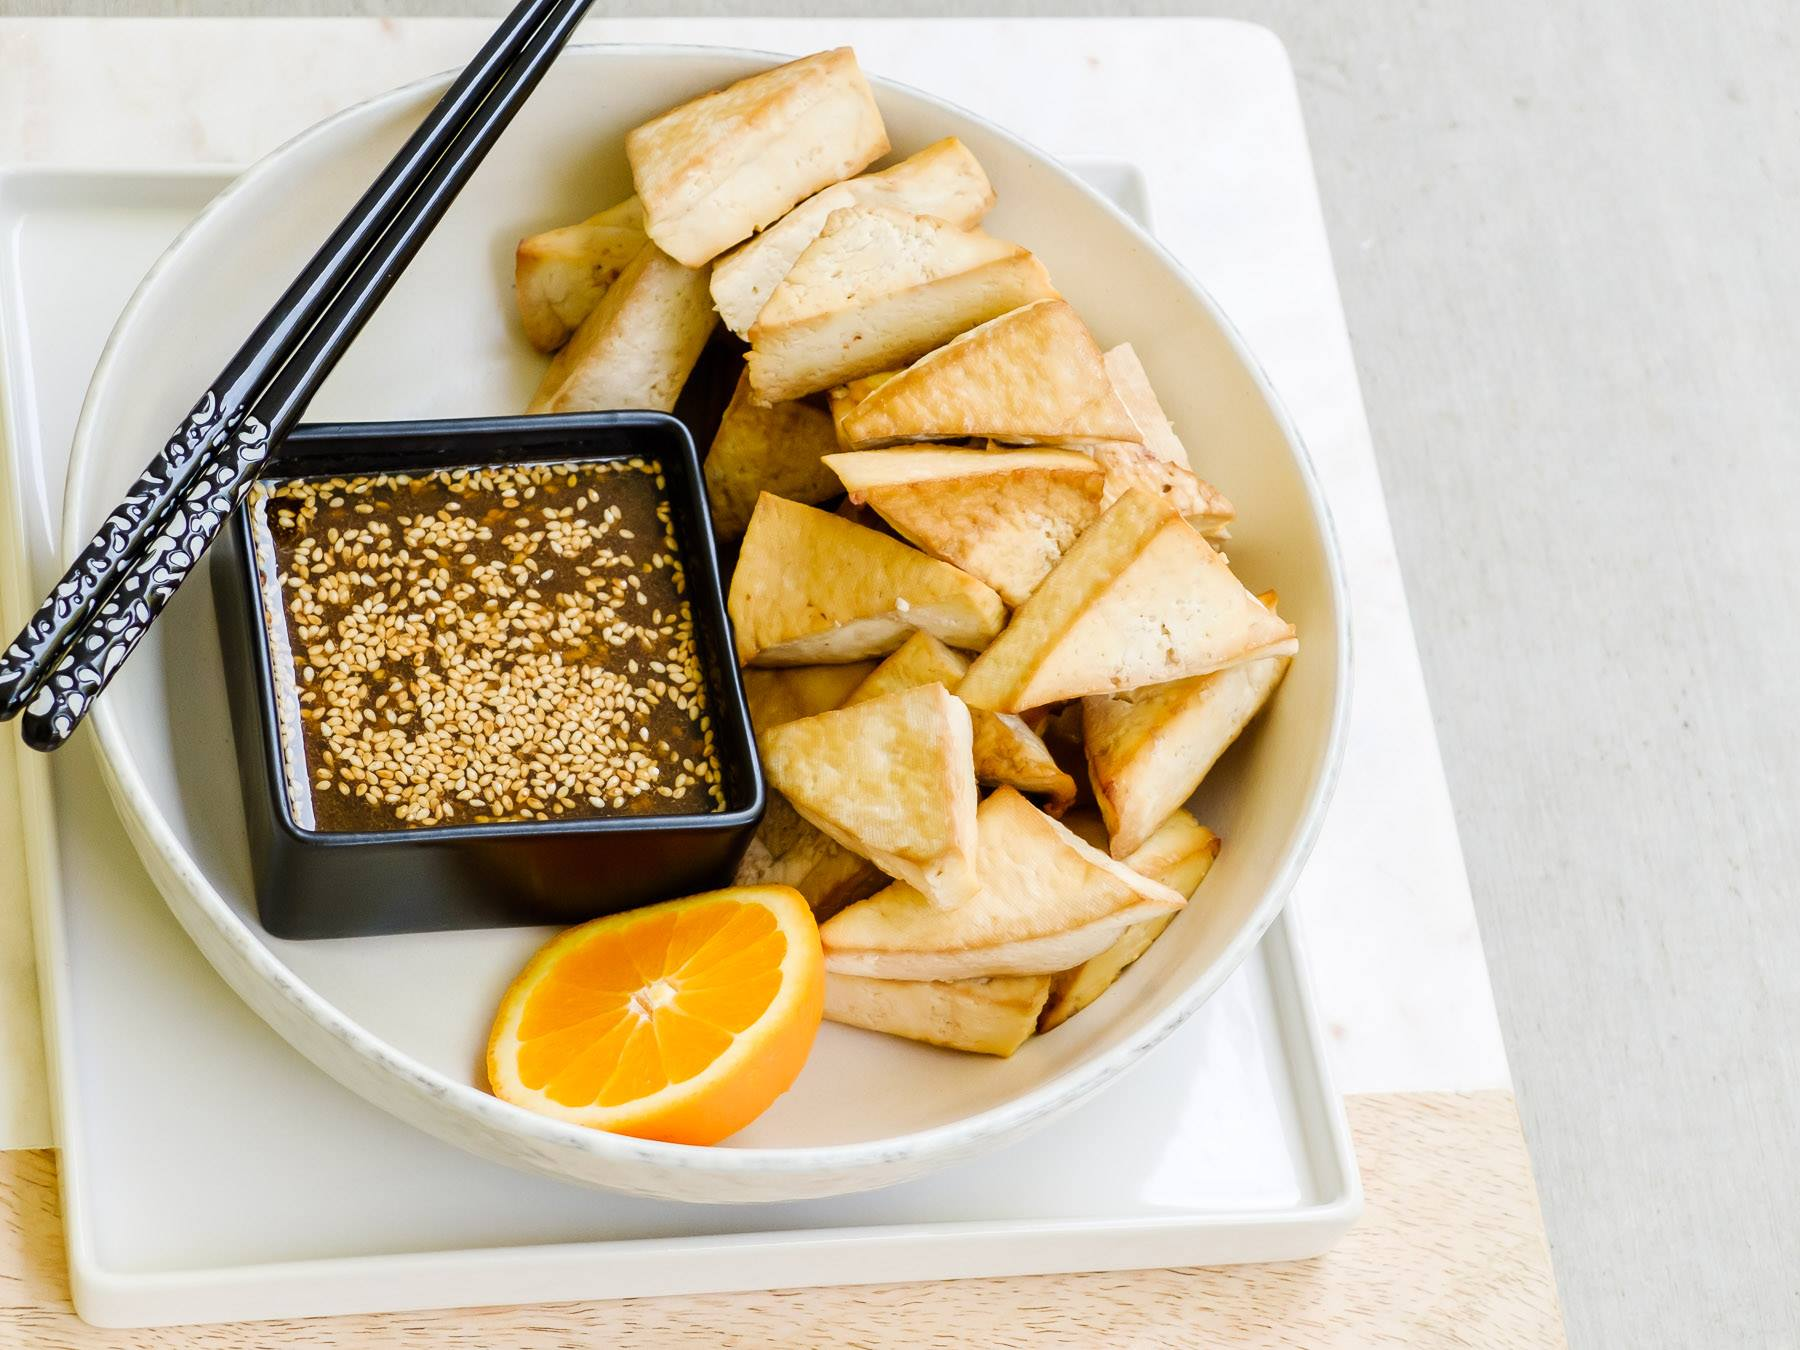 The Perfect Baked Tofu with Sesame-Citrus Dipping Sauce